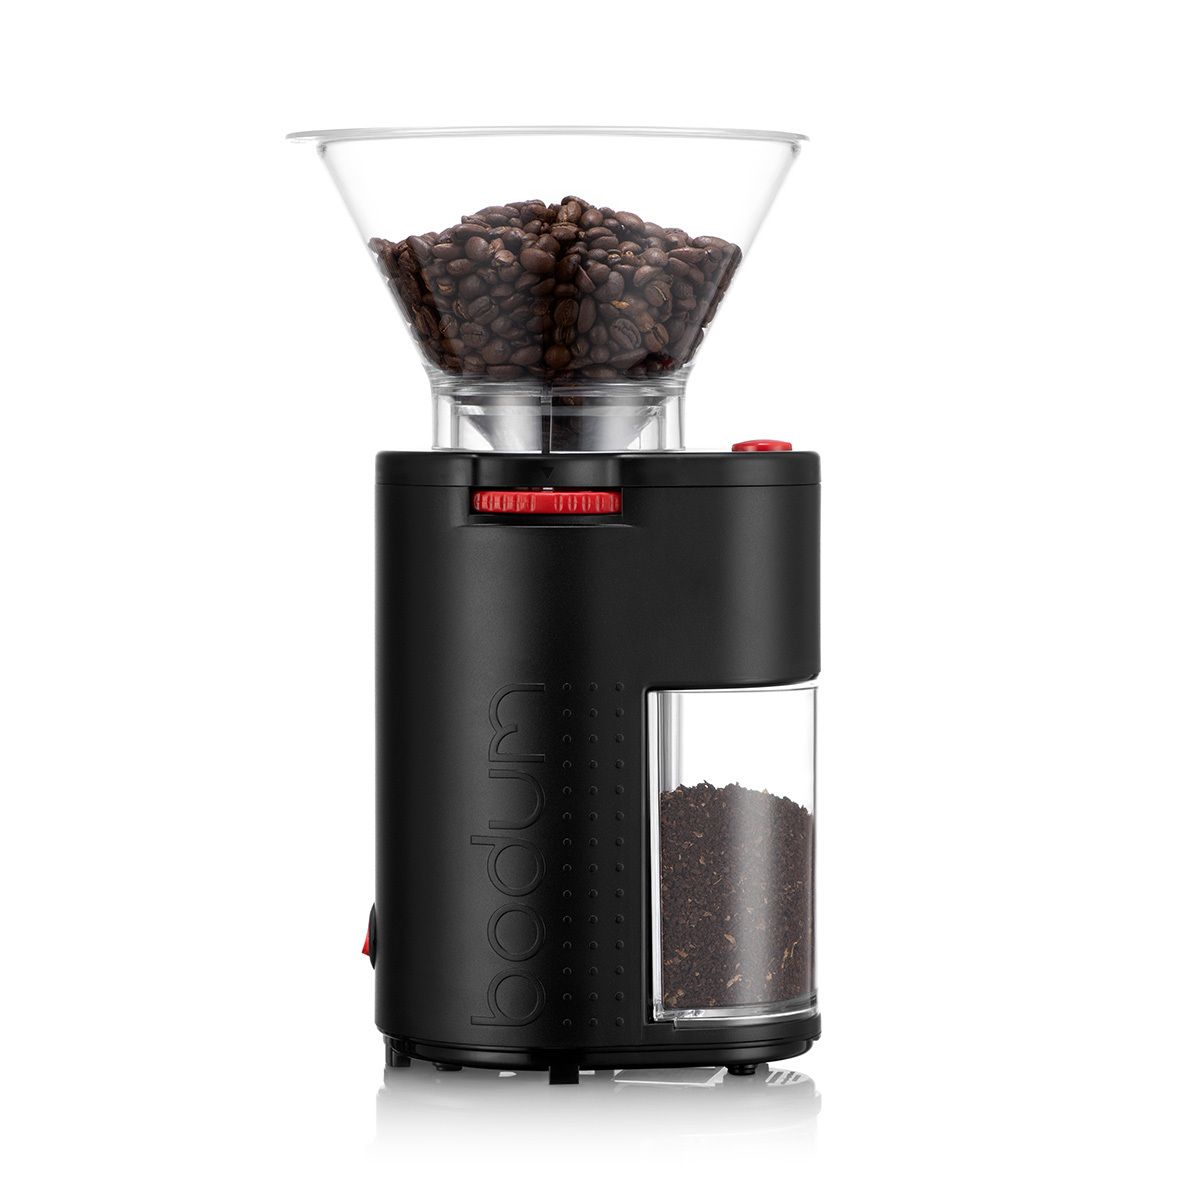 BODUM Burr Coffee Grinder BISTRO - Black